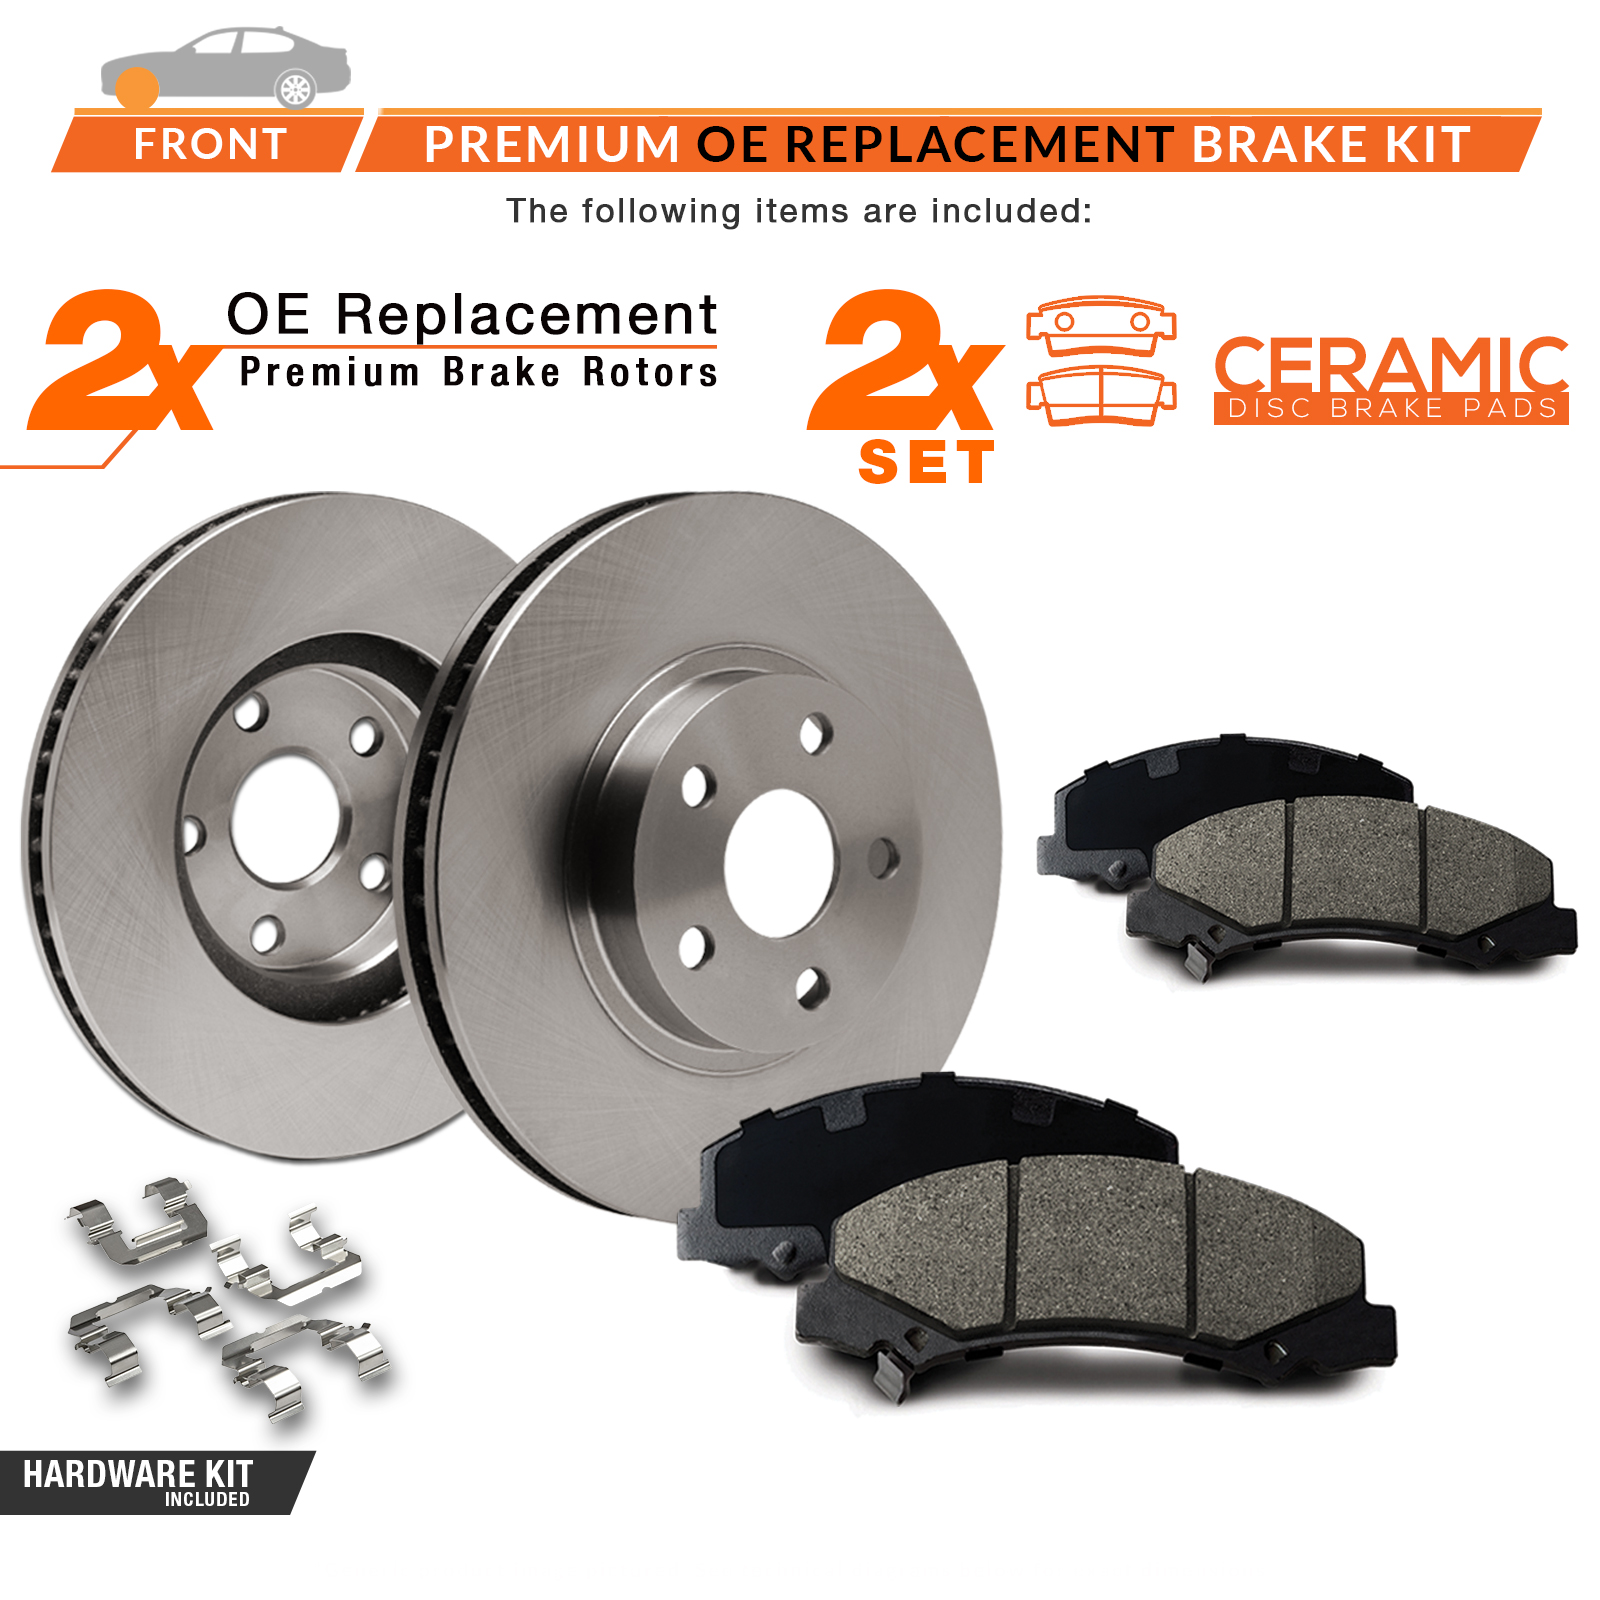 FRONT-KIT-OE-Replacement-Brake-Rotors-with-Ceramic-Pads-amp-Hardware-Kit